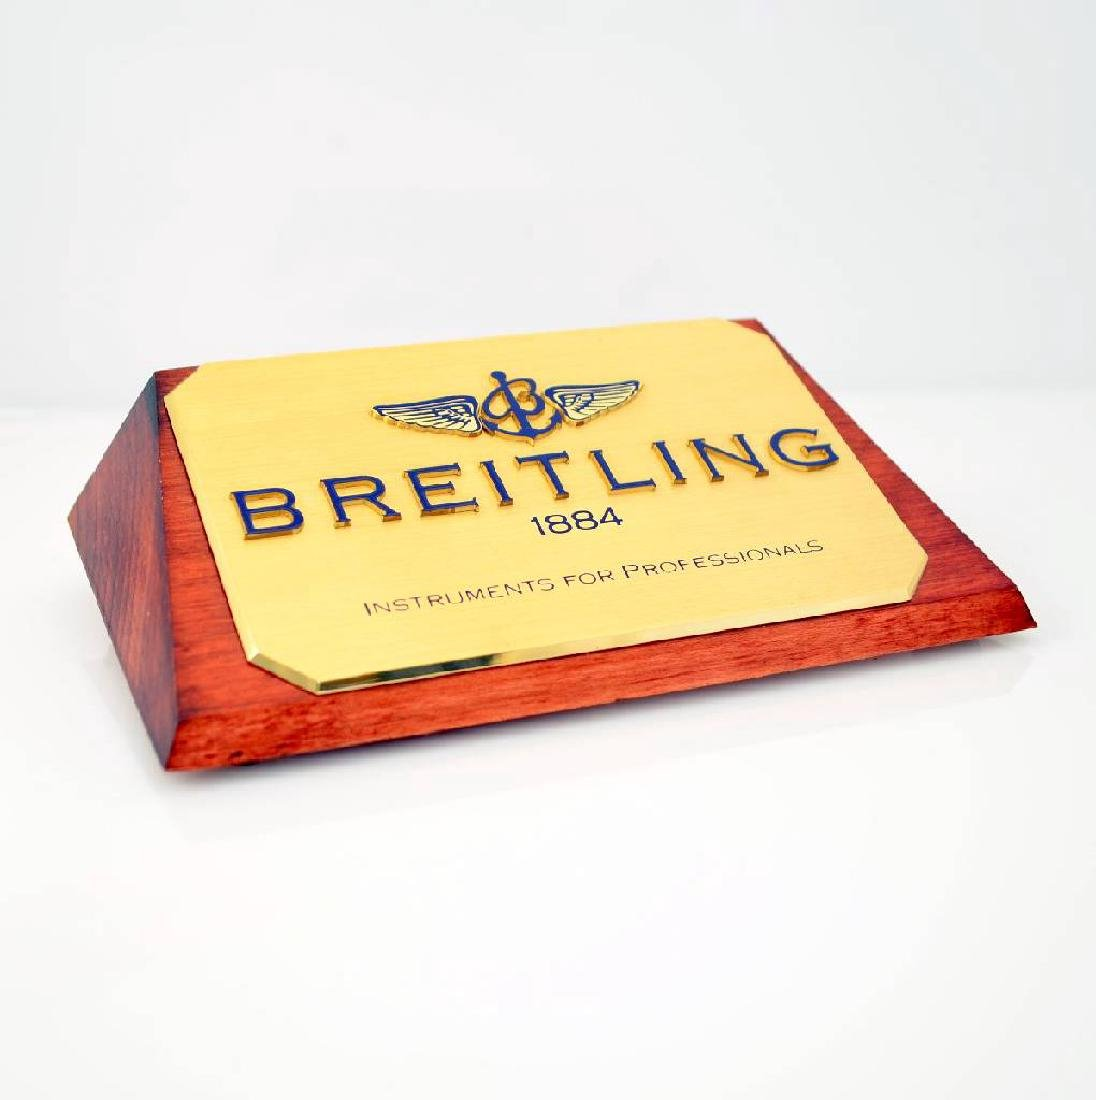 Set of 3 Breitling advertising signs - 2